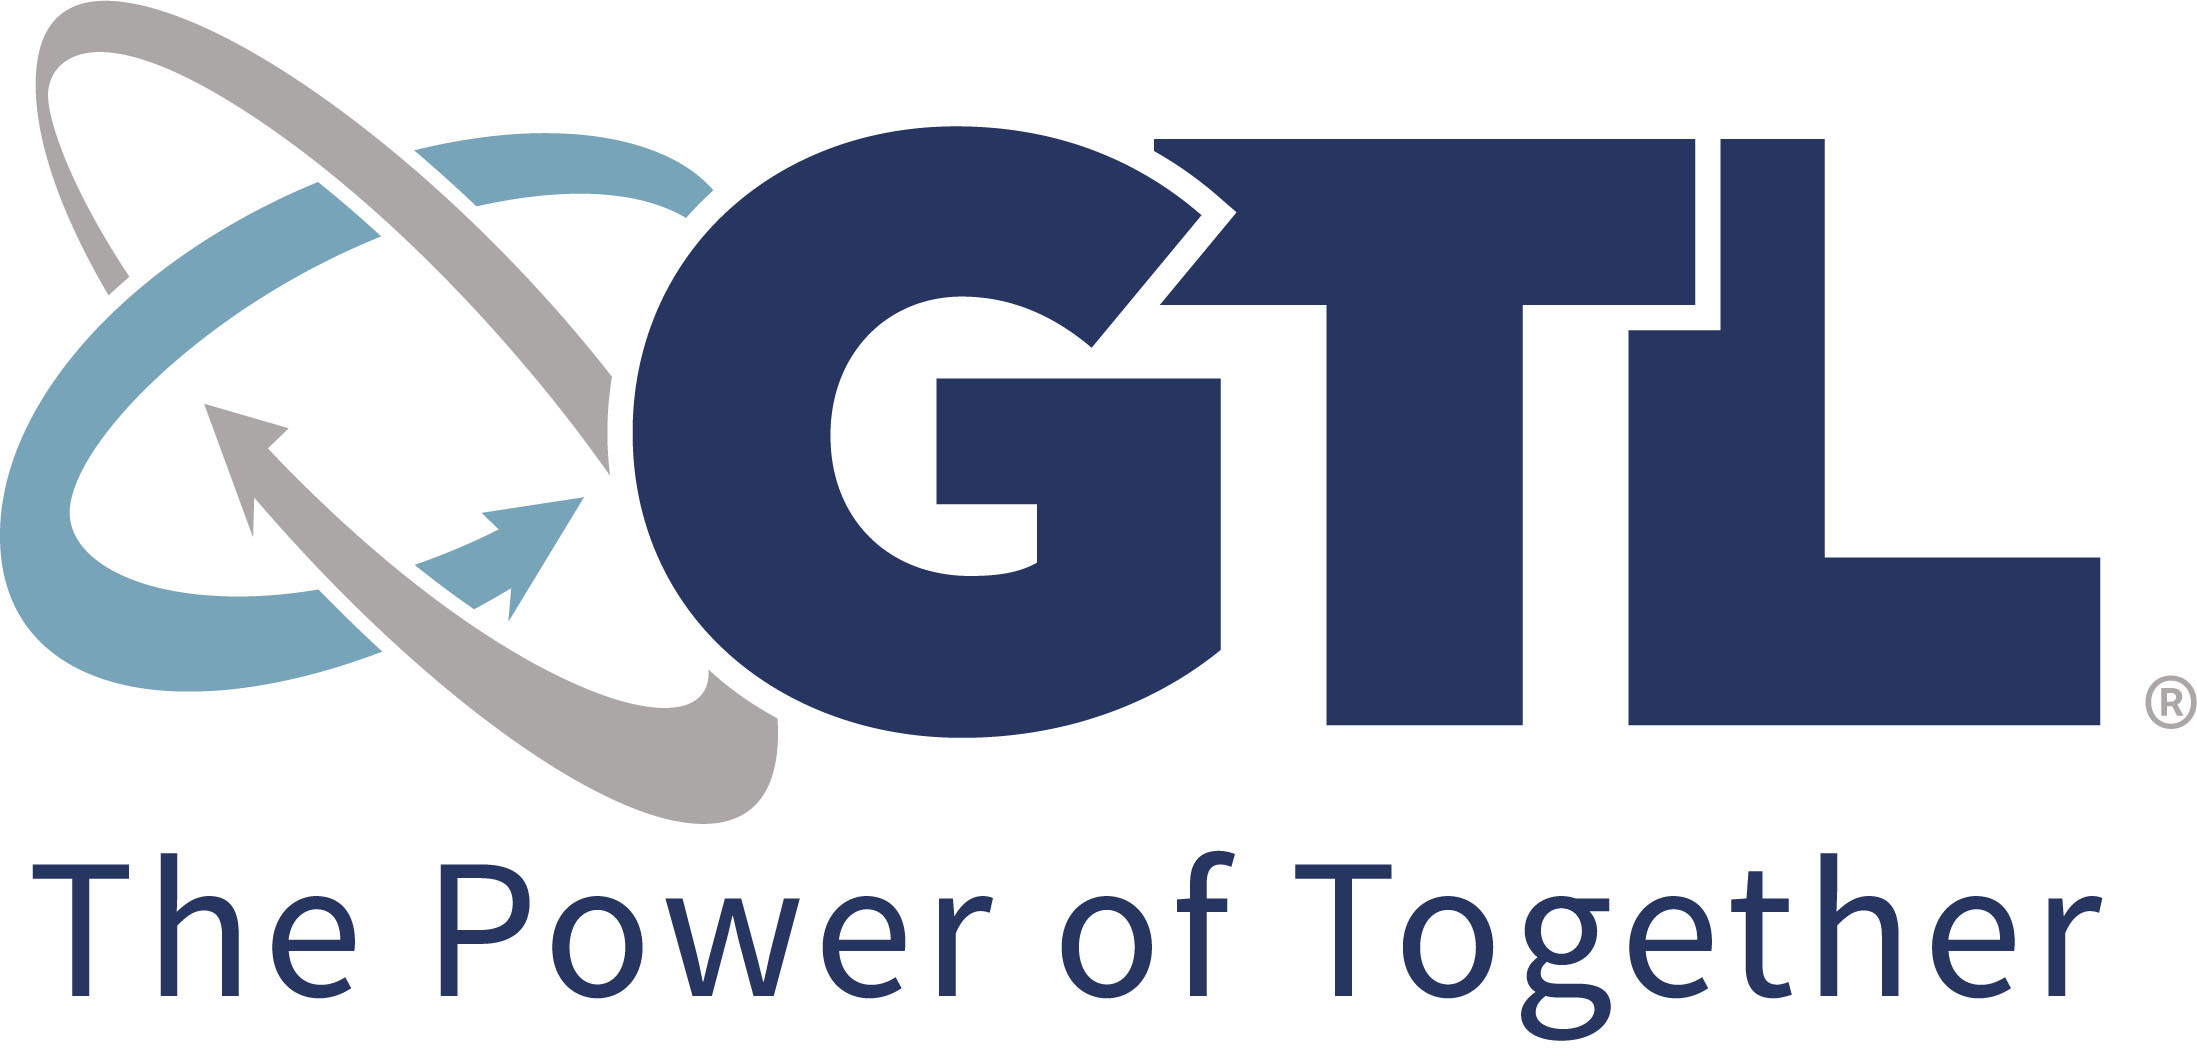 Madison County Detention Center Implements GTL Services to Increase Communication Between Inmates and Friends and Family